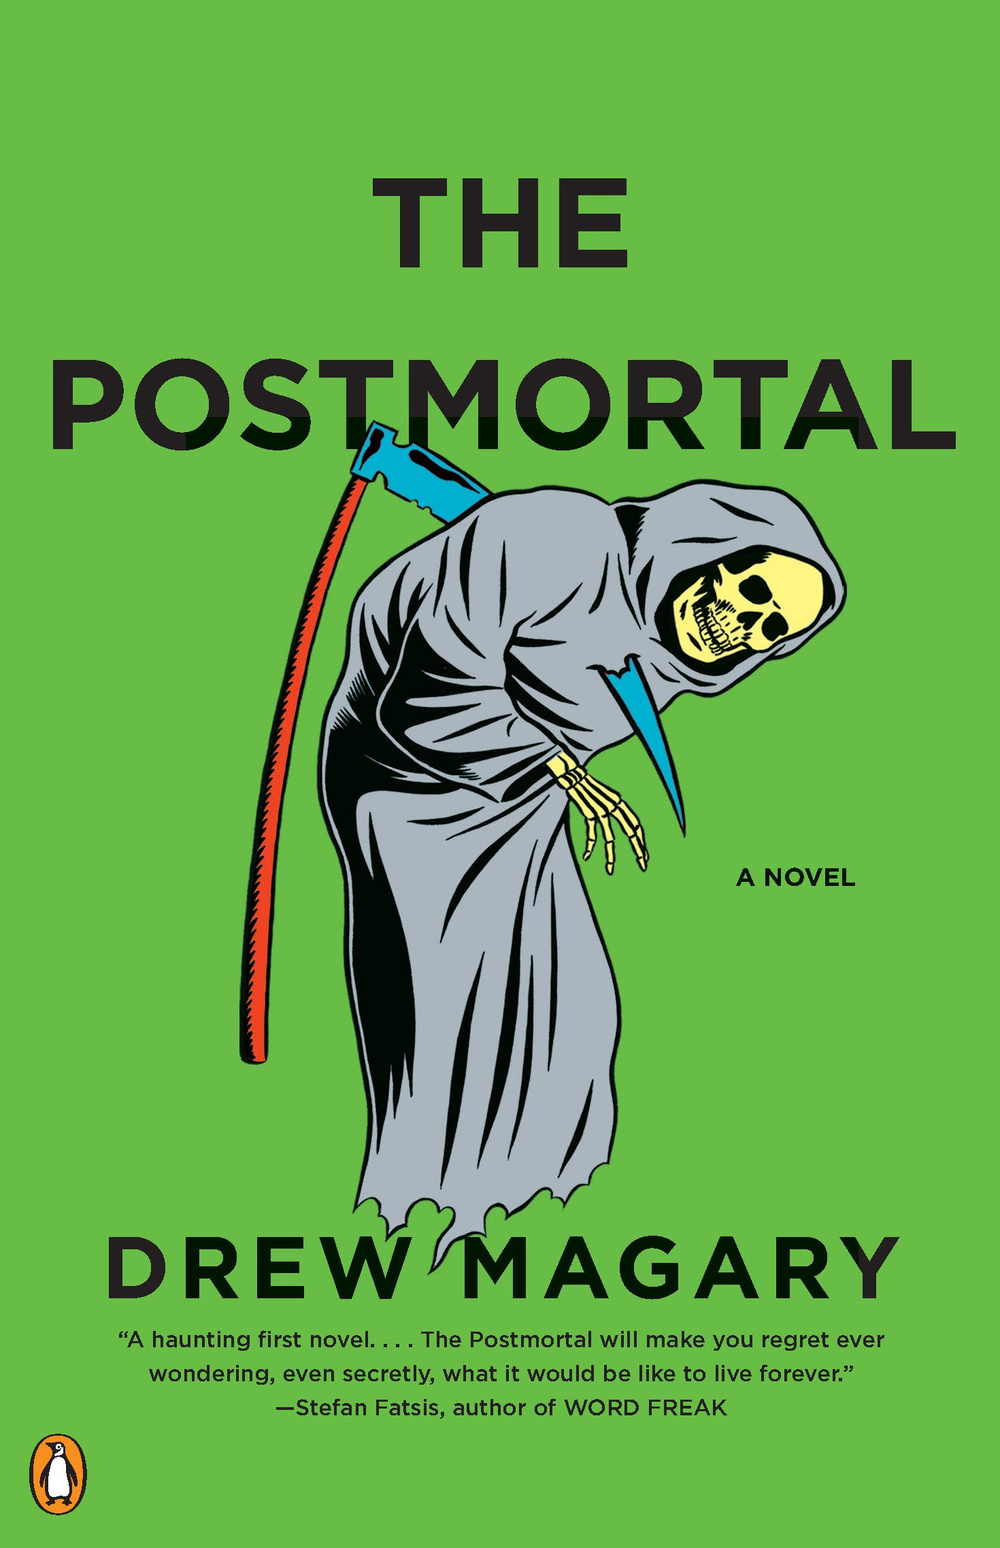 Dystopic Homesick Blues: The Postmortal by Drew Magary